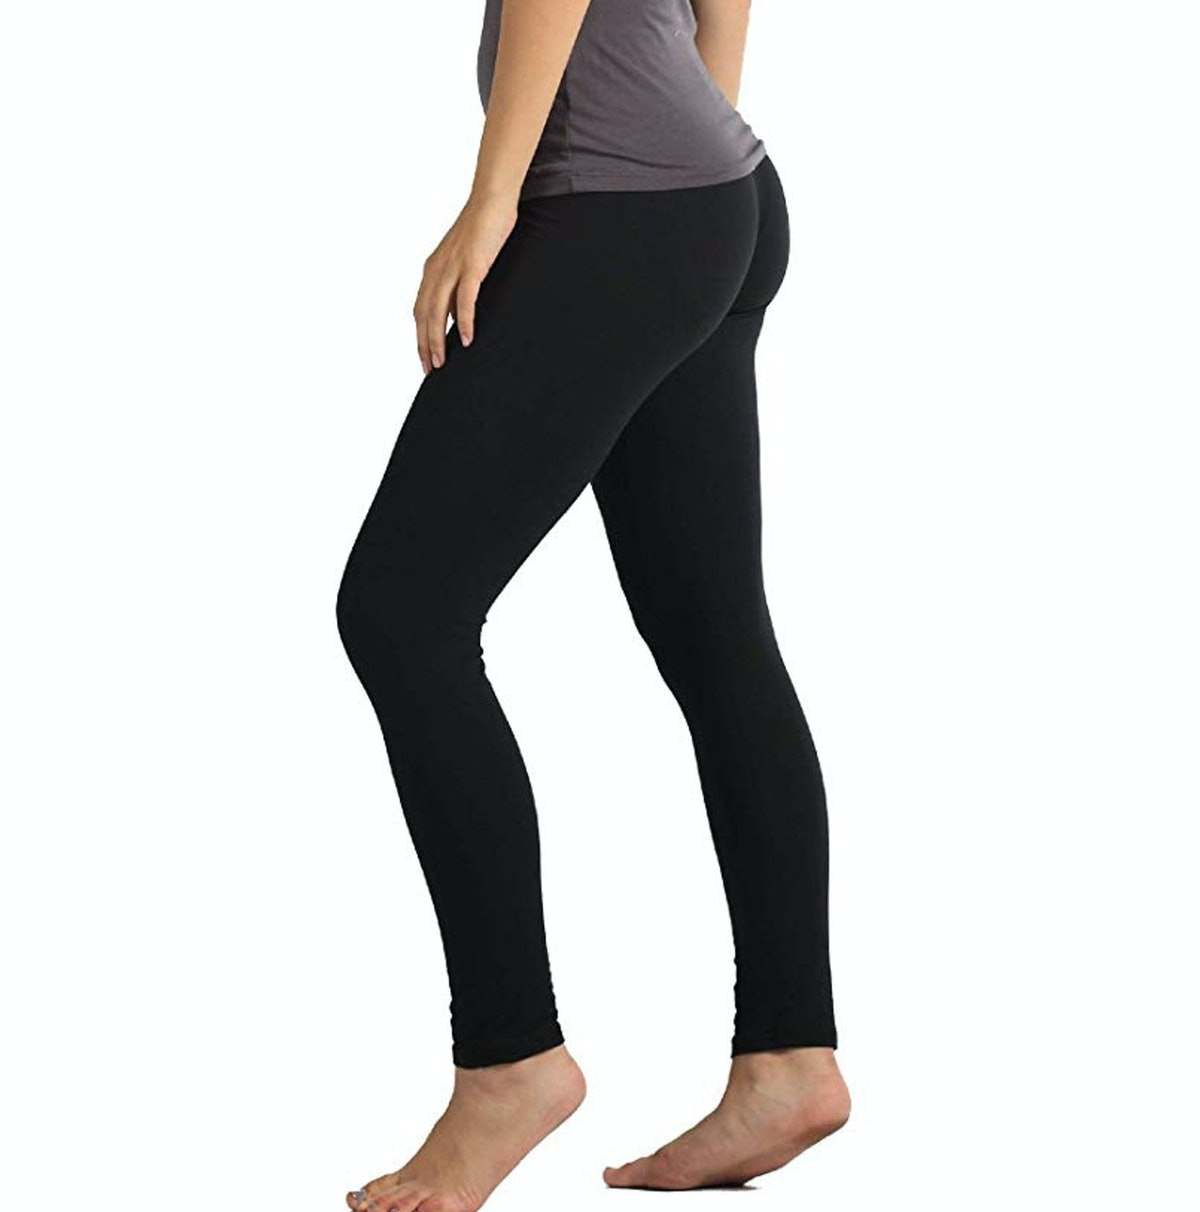 Conceited High-Waisted Women's Leggings